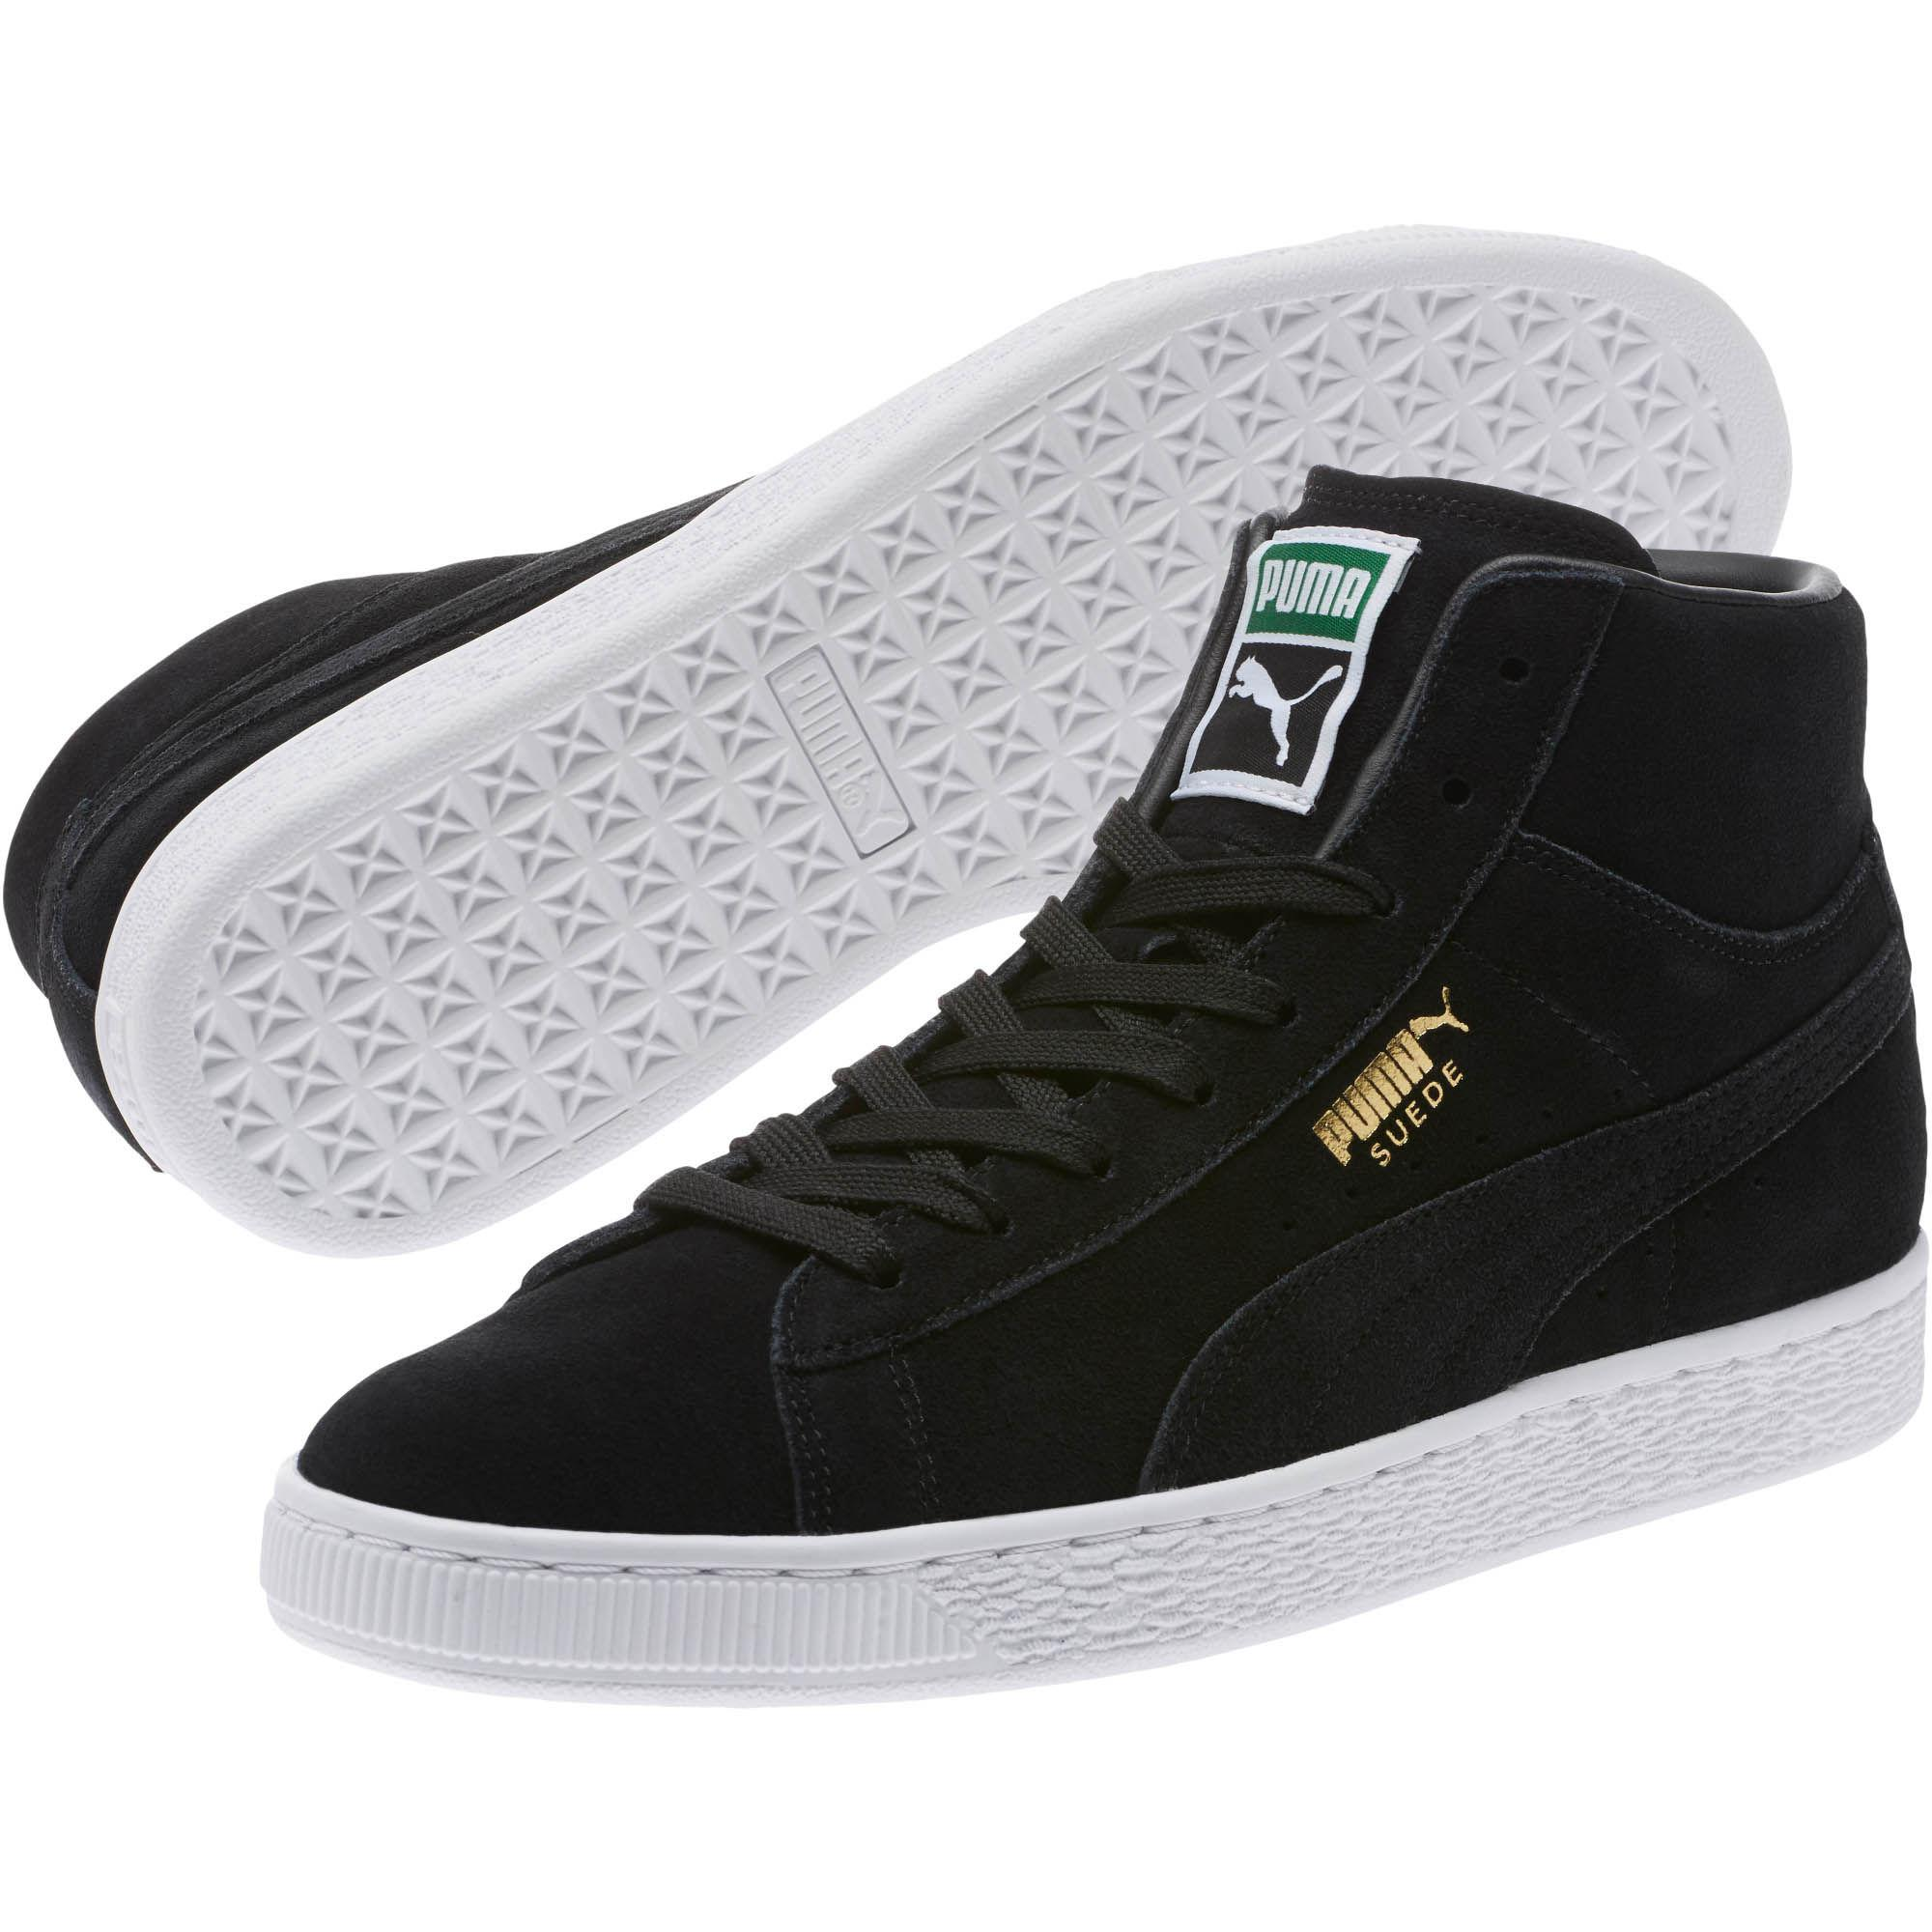 PUMA Suede Classic Mid Sneakers in Black for Men - Lyst